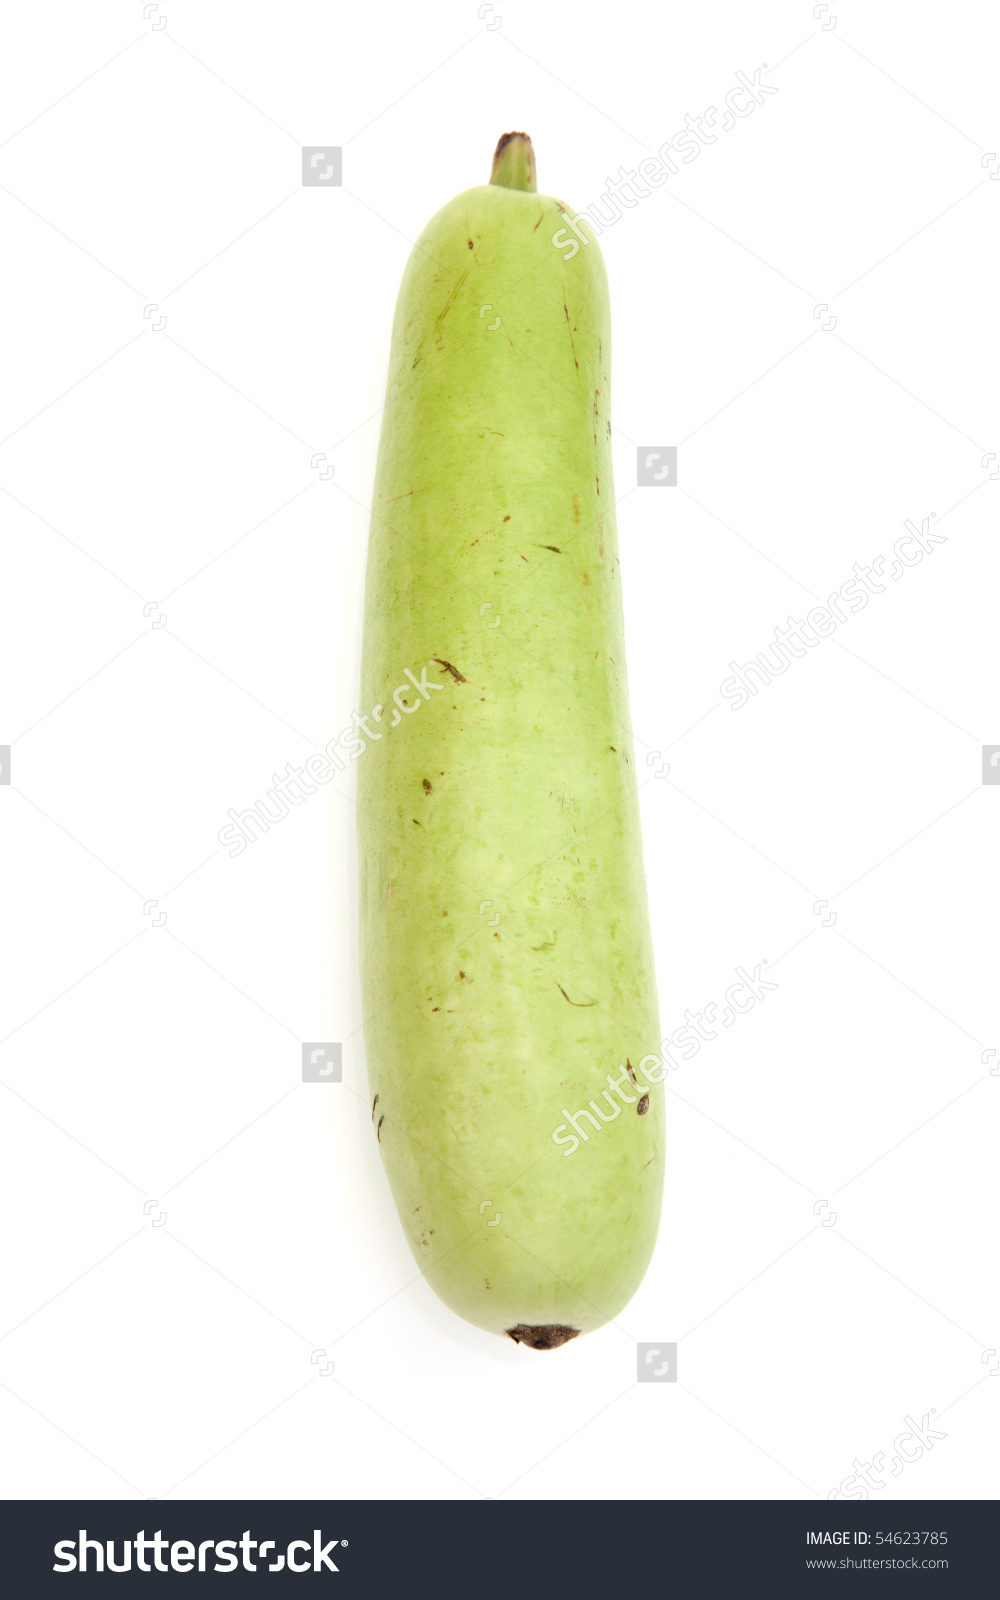 Dudhi Bottle Gourd Isolated On White Stock Photo 54623785.